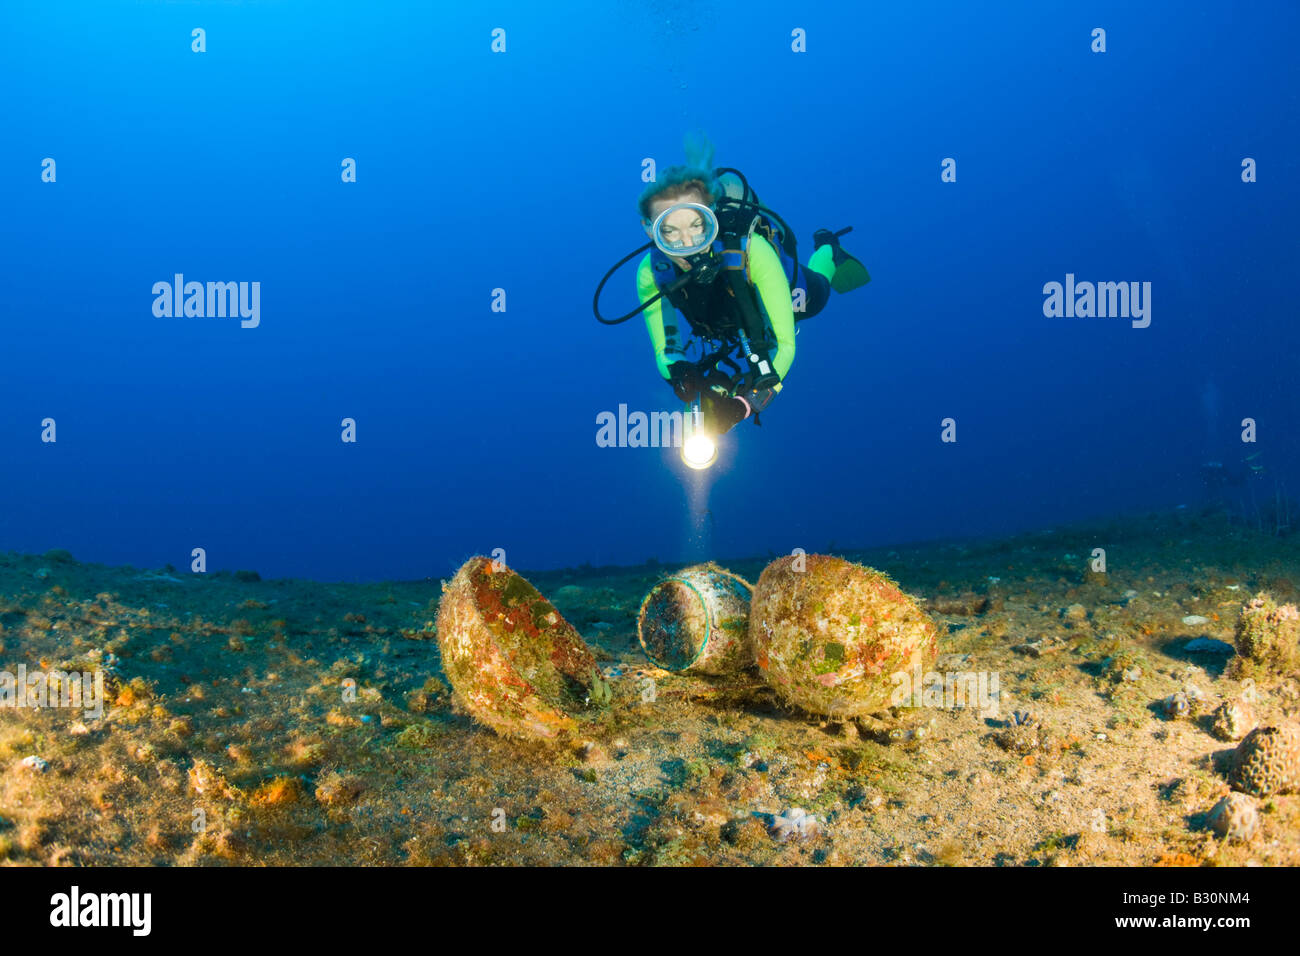 Diver discover Tableware at Destroyer USS Anderson Marshall Islands Bikini Atoll Micronesia Pacific Ocean - Stock Image